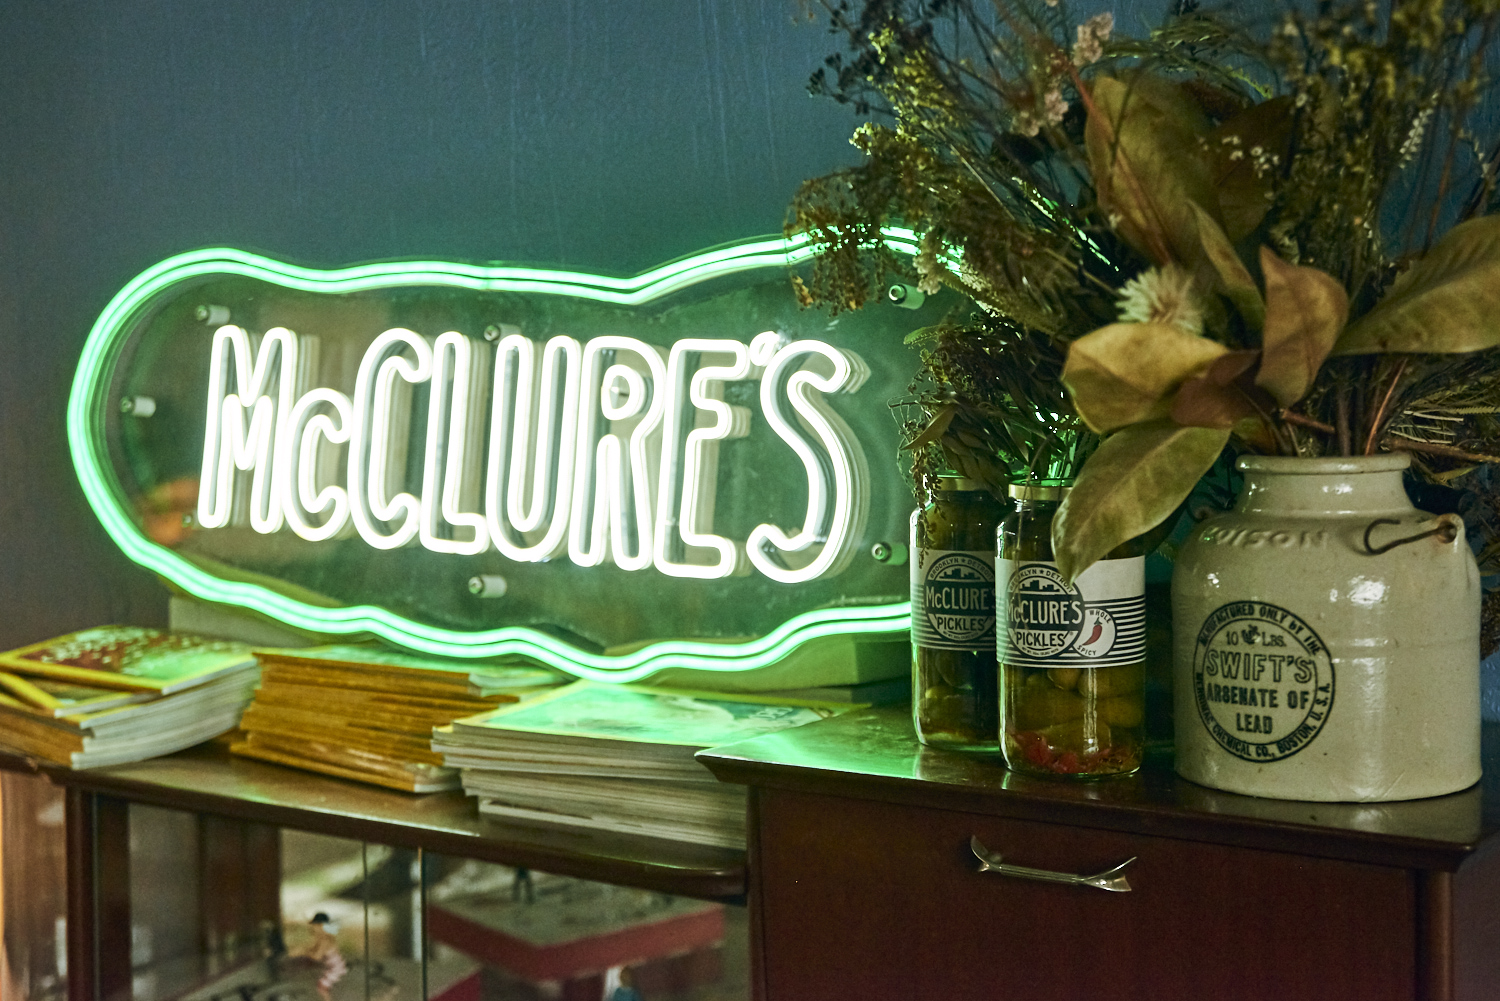 Neon McClure's Pickle sign credit IVDM photogrpahy